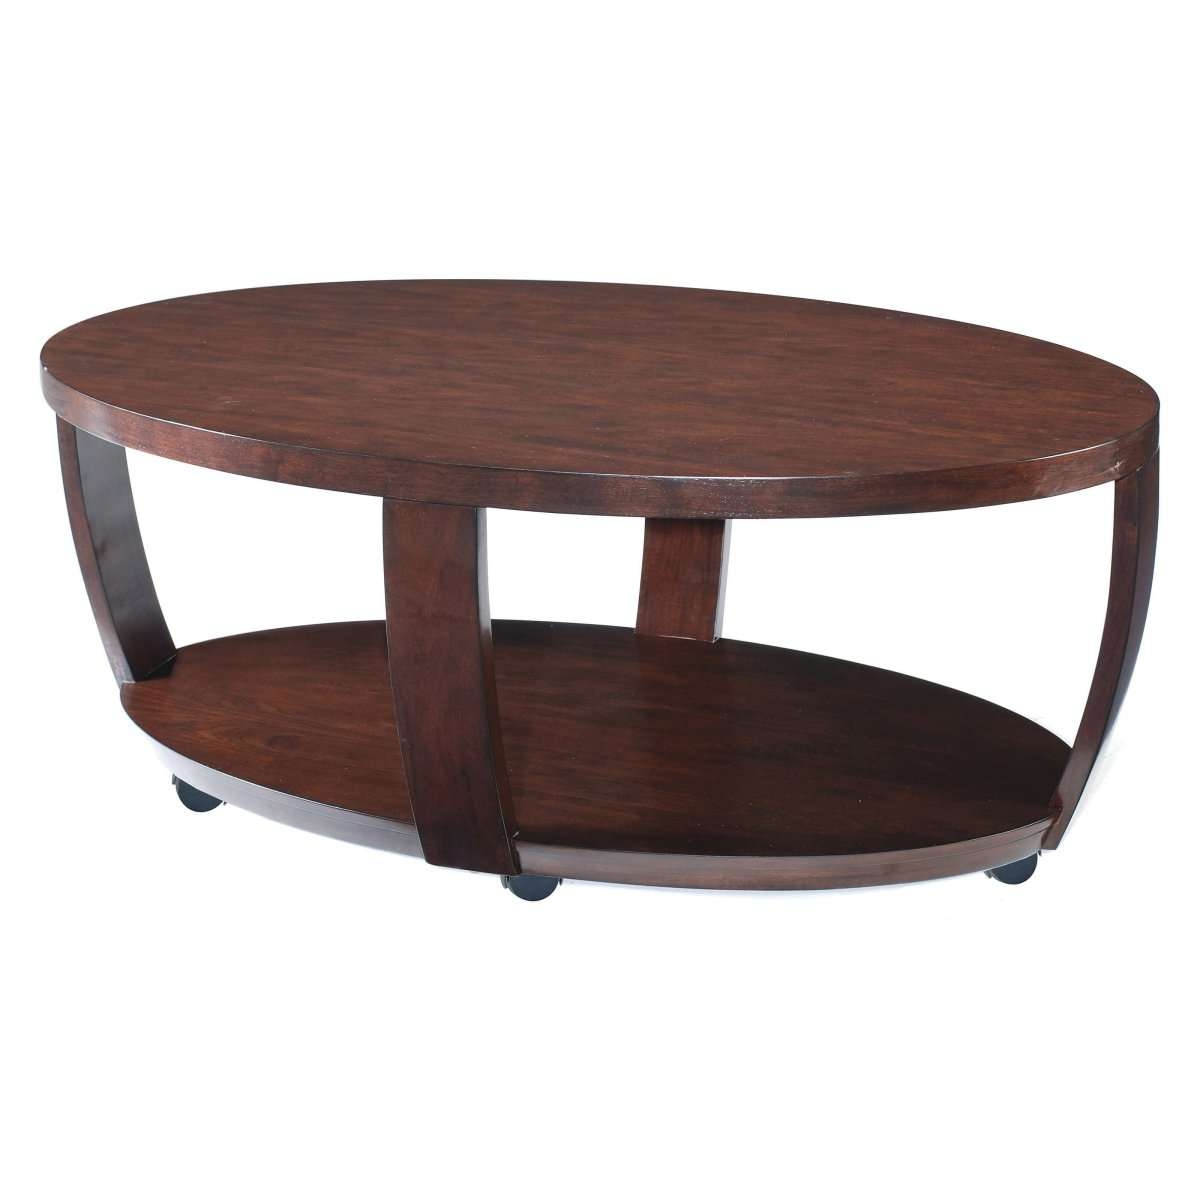 Coffee Tables : Oval Wood Coffee Table Luxury Marvelous Rustic Inside Widely Used Coffee Tables With Oval Shape (View 5 of 20)